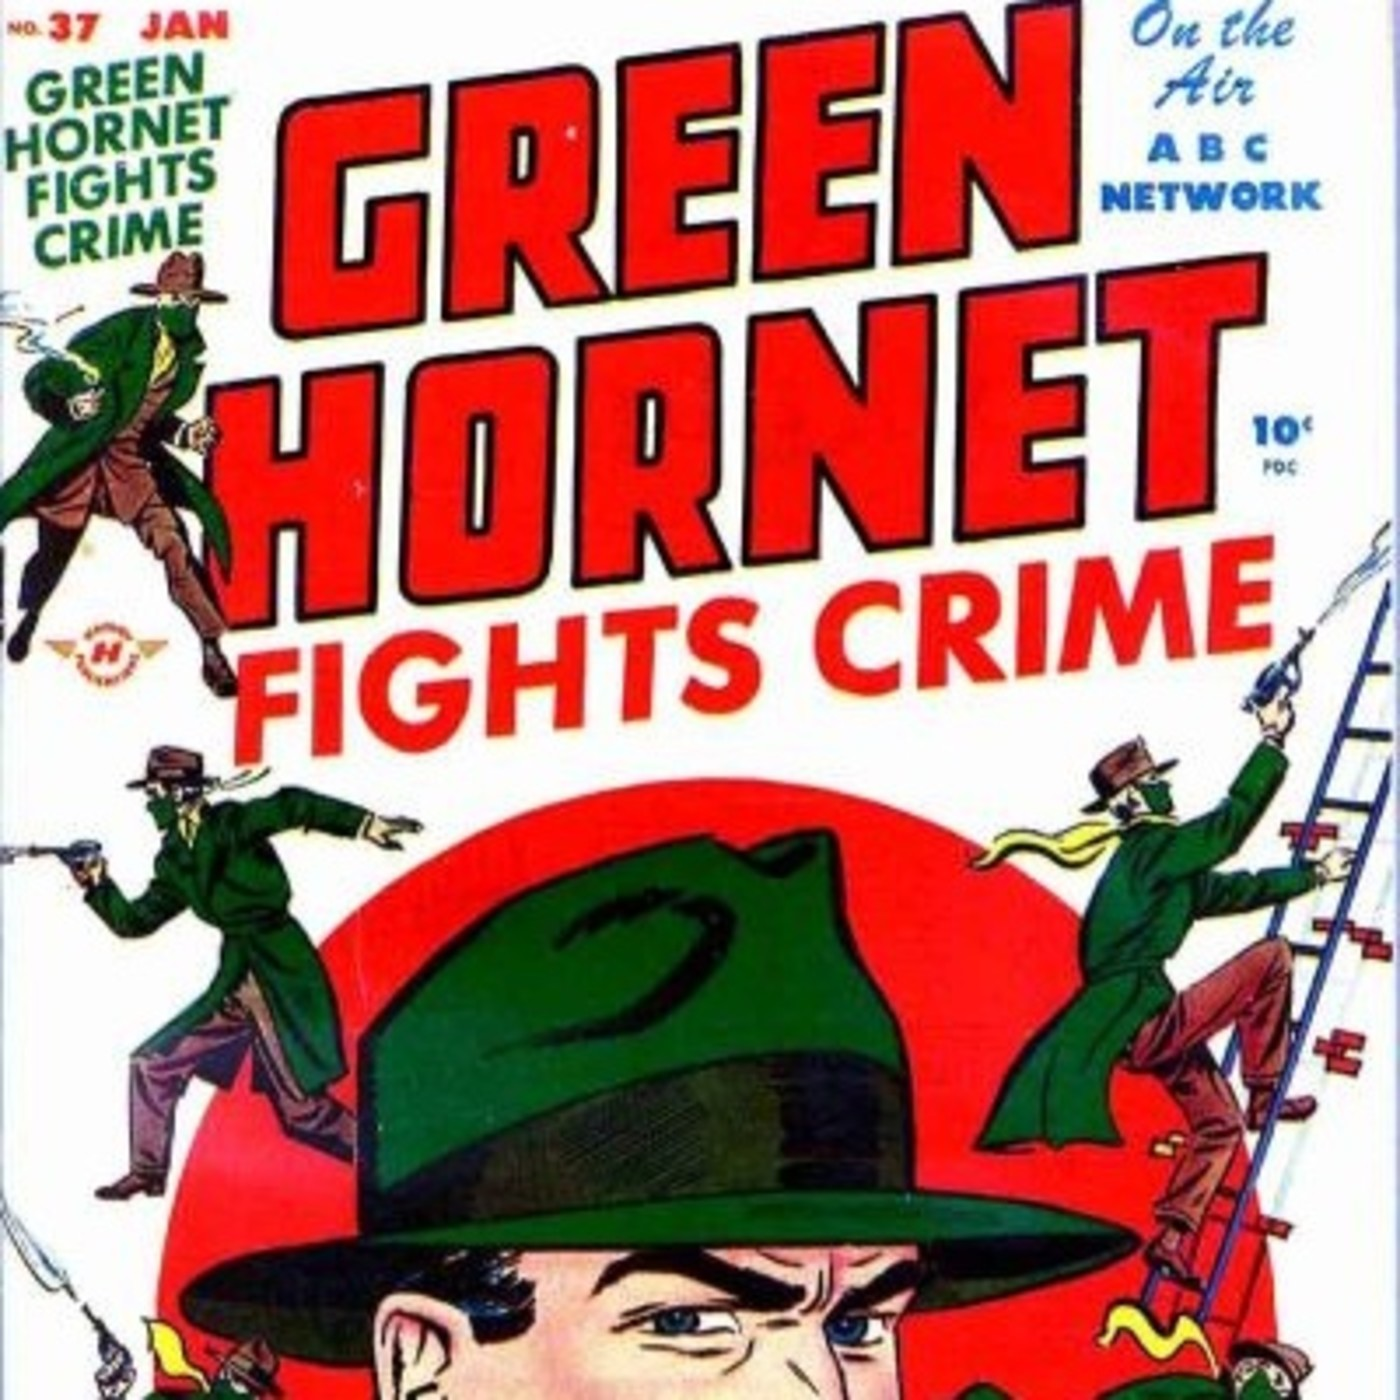 The Green Hornet - 00 - 451129 The Gas Station Prot.mp